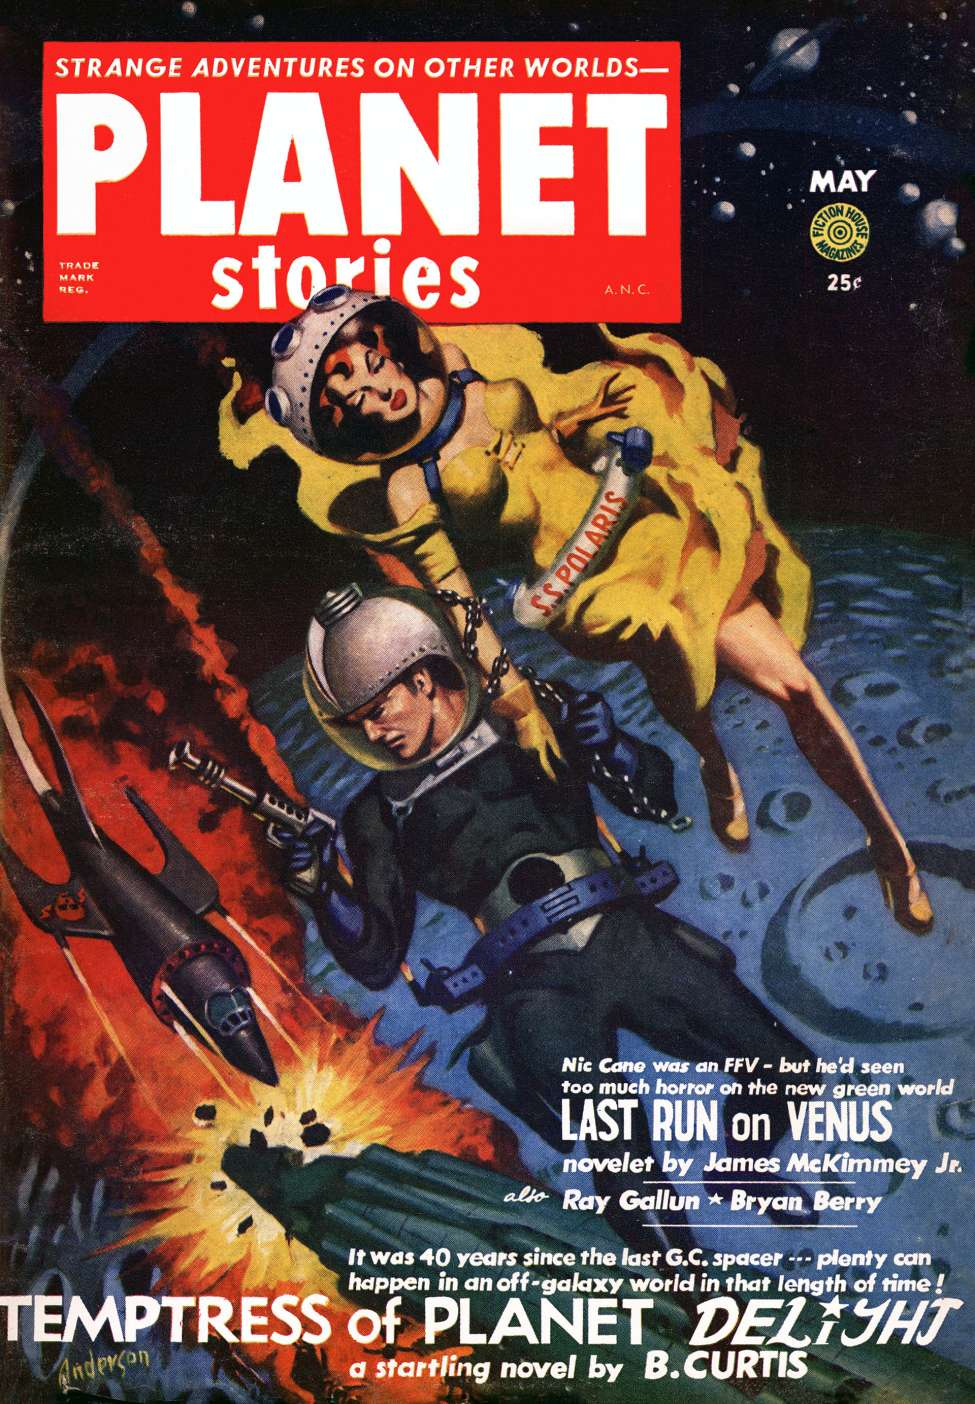 Comic Book Cover For Planet Stories v05 12 - Temptress of Planet Delight - B. Curtis